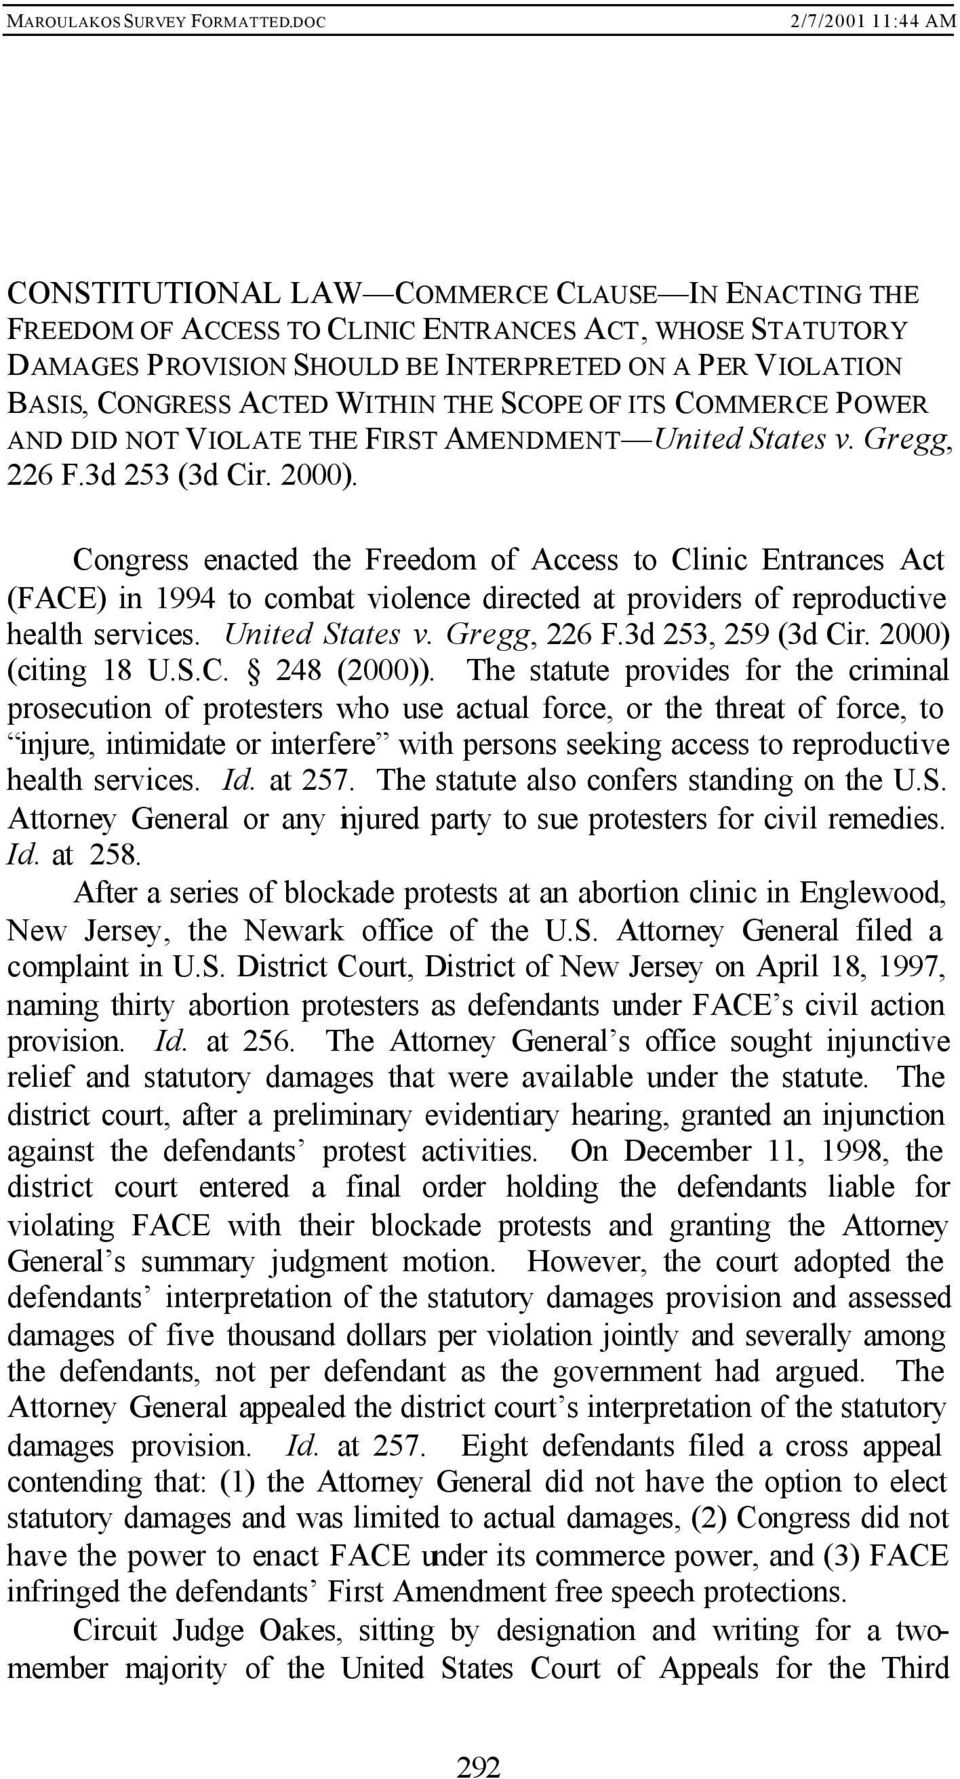 Congress enacted the Freedom of Access to Clinic Entrances Act (FACE) in 1994 to combat violence directed at providers of reproductive health services. United States v. Gregg, 226 F.